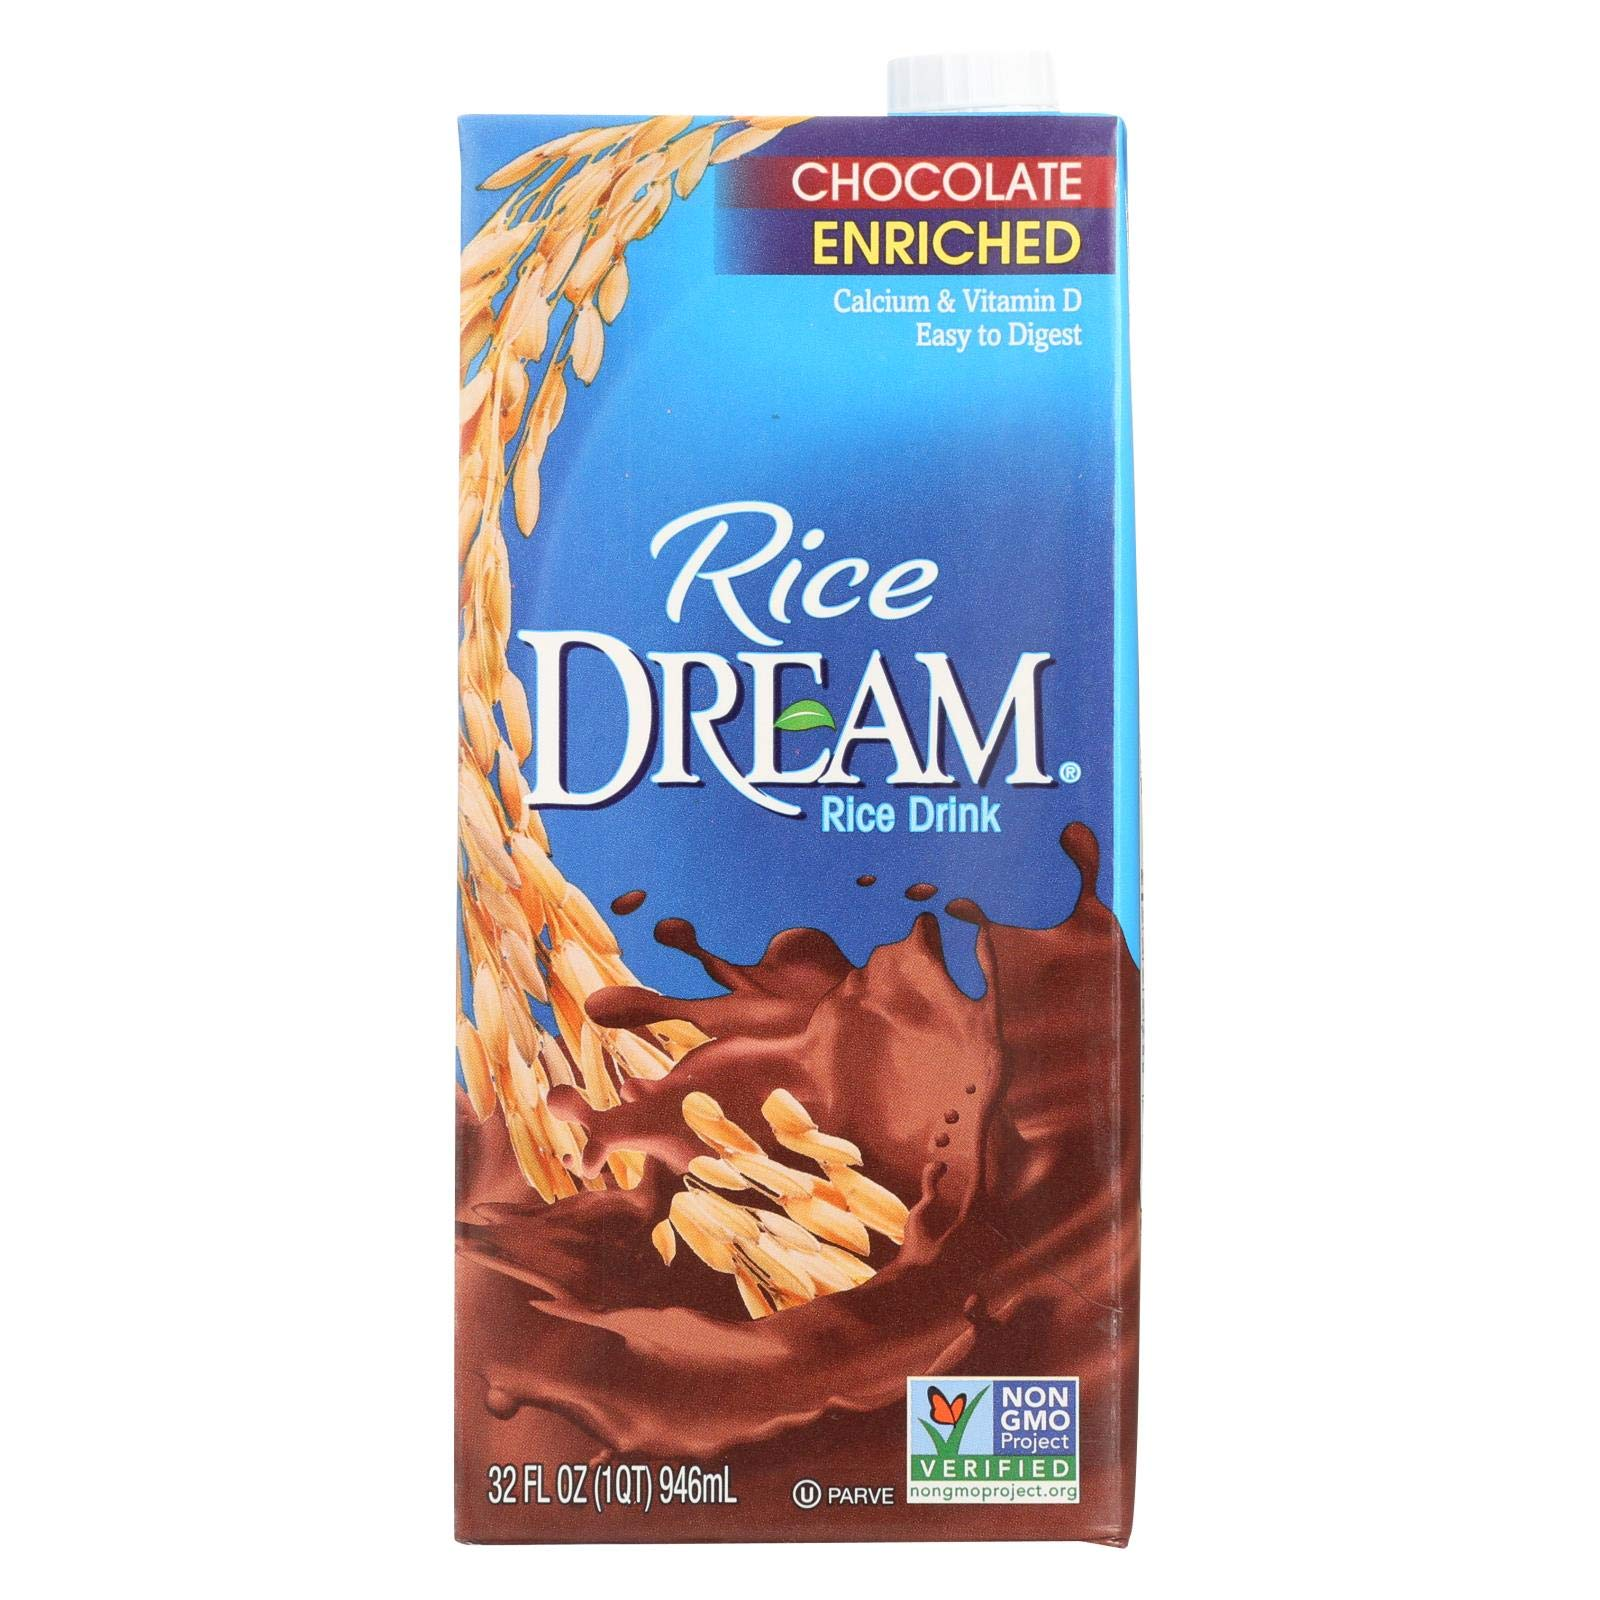 Imagine Foods Rice Dream Enriched Rice Drink - Chocolate - Case of 12 - 32 Fl oz. by Imagine Foods